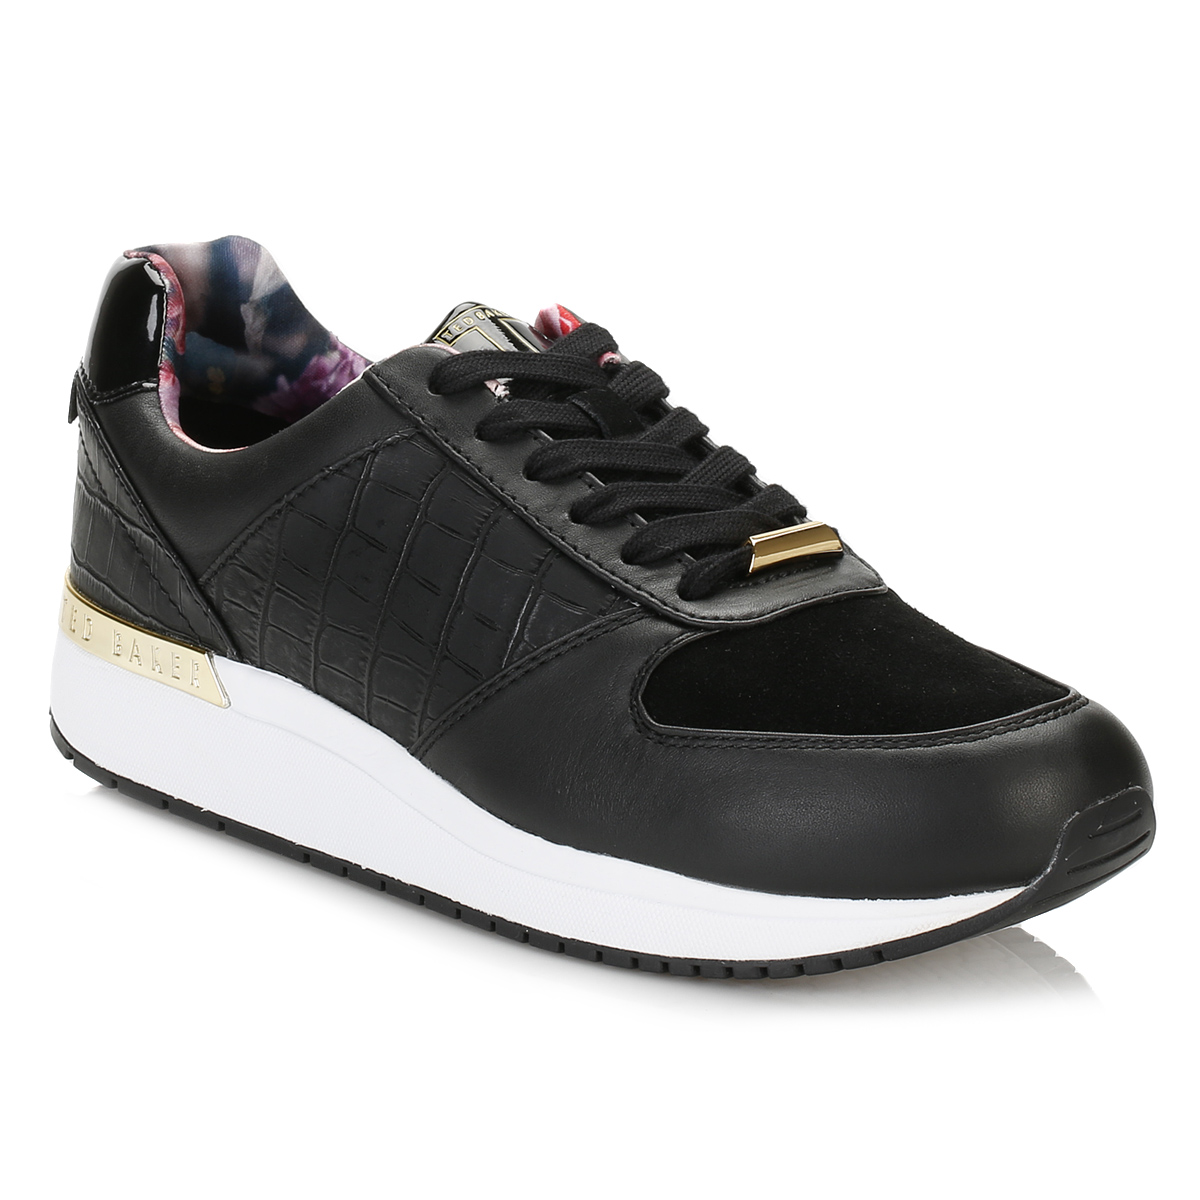 From fashion trainers to running shoes, you'll find the perfect fit in our range of women's trainers. Including iconic hi-tops from Converse, laid-back sports shoes from Skechers, plus slip-ons and lace-ups in black, white and more.